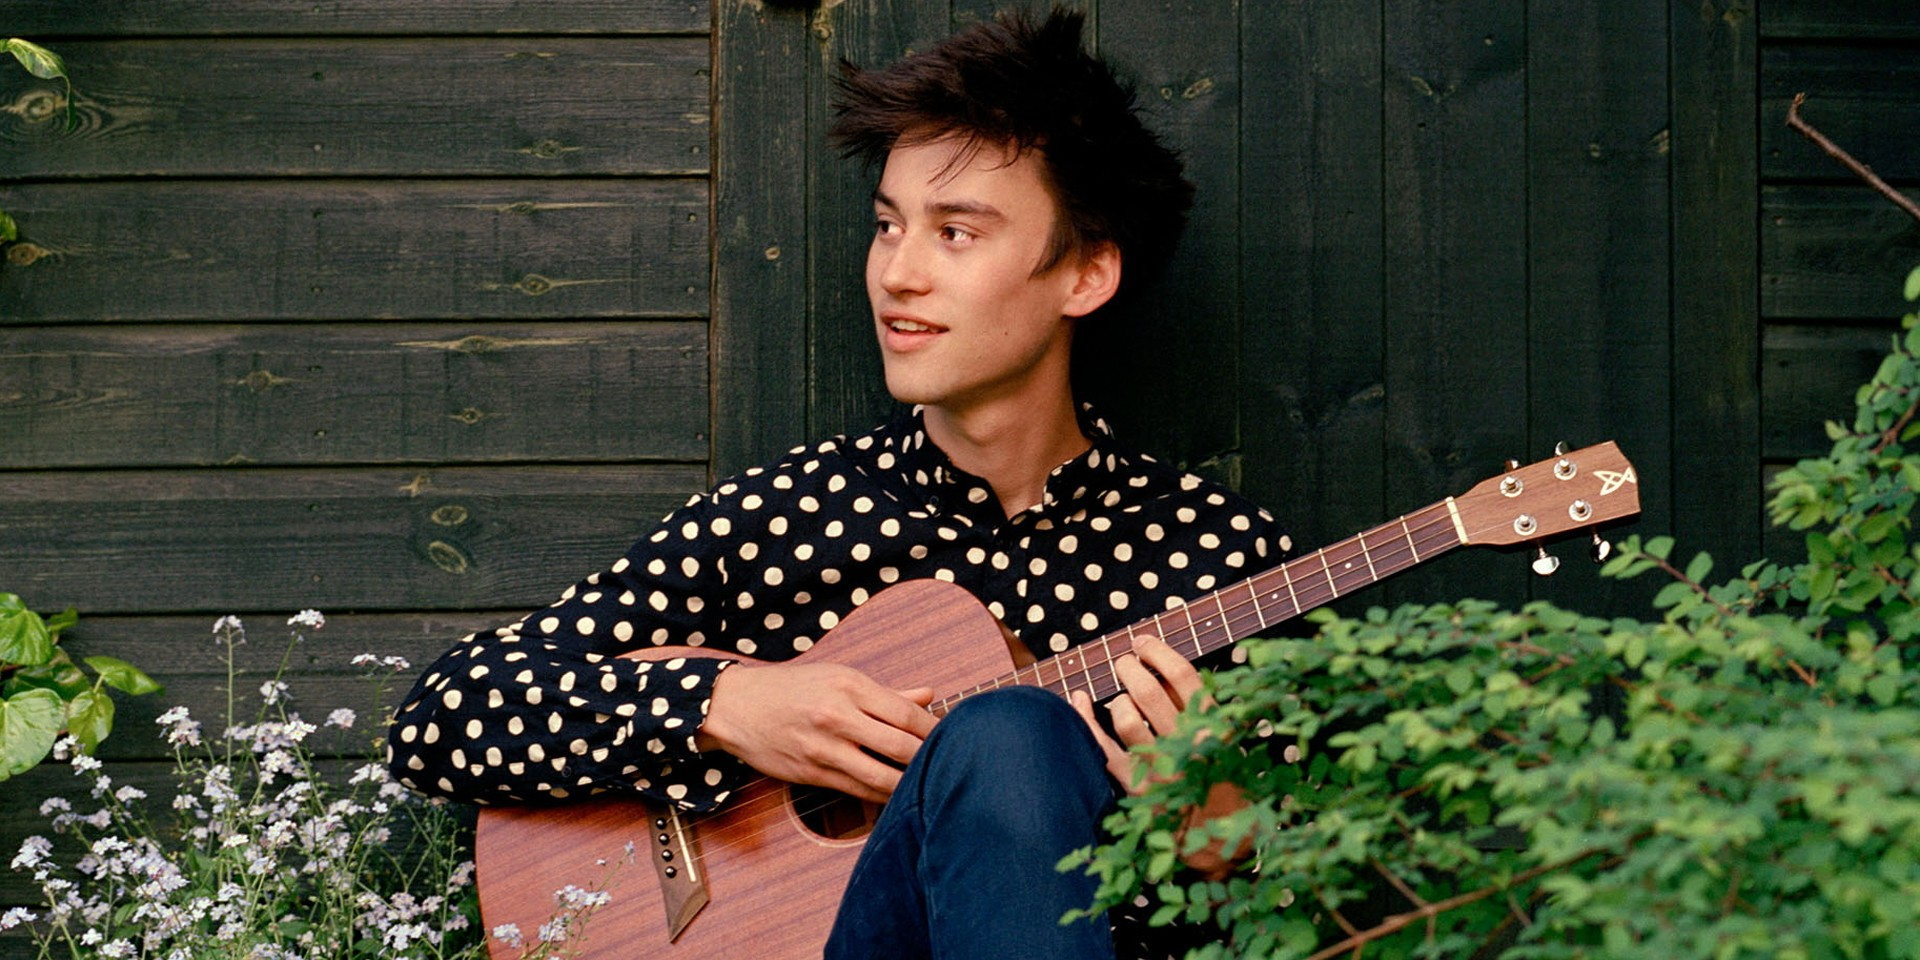 """""""You can shape the nature of this tour"""": Jacob Collier announces new direction for Djesse World Tour"""